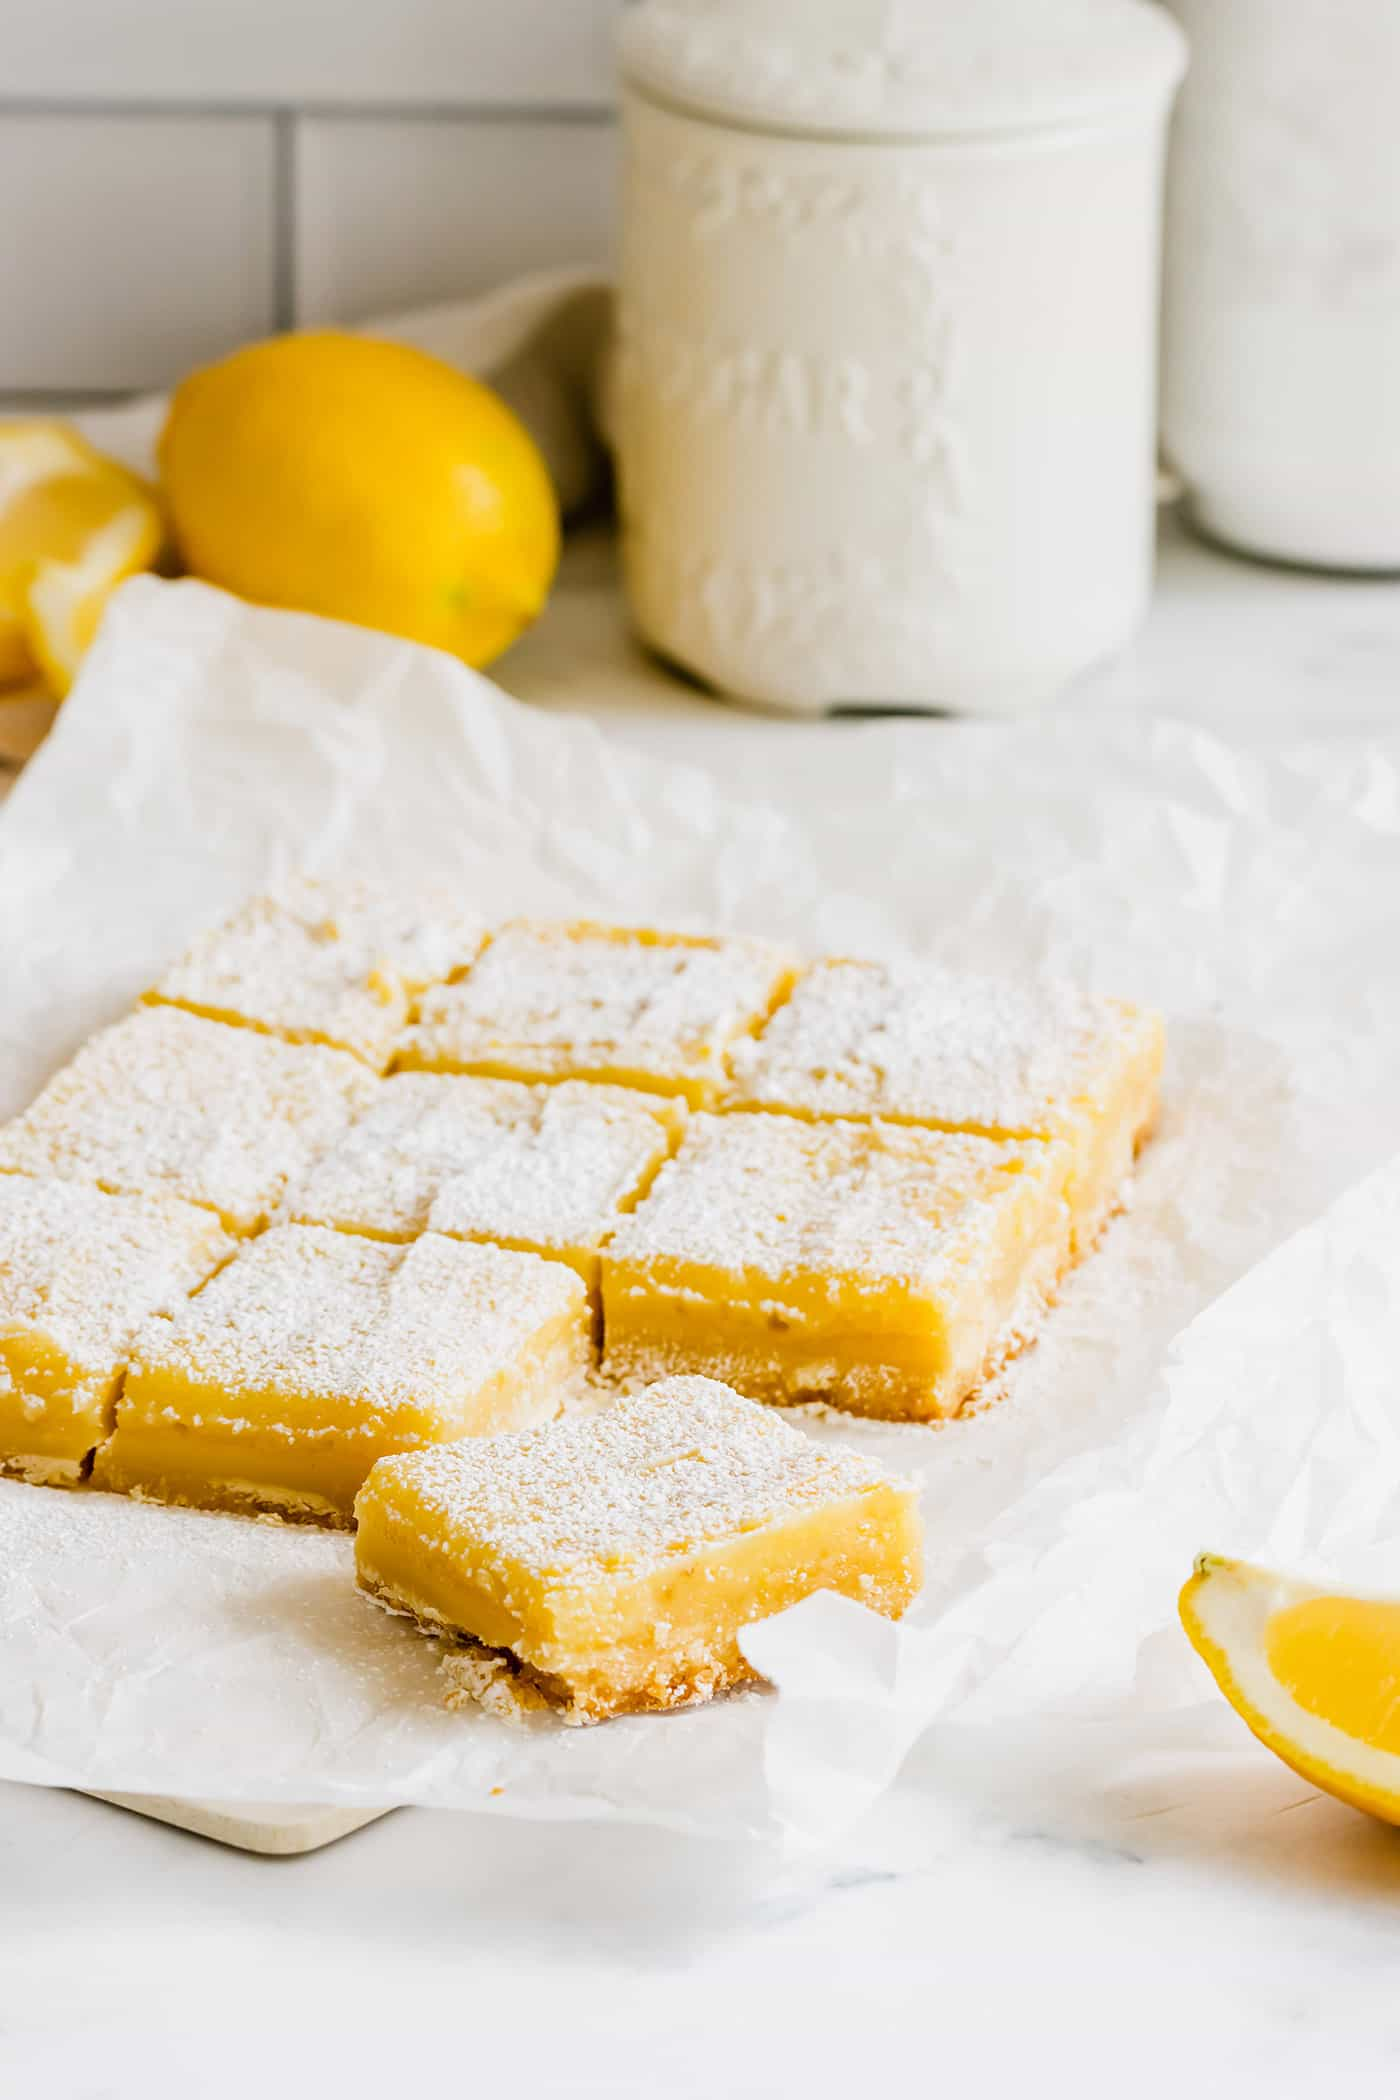 bars consisting of a shortbread crust topped with lemon curd and sprinkled with powdered sugar